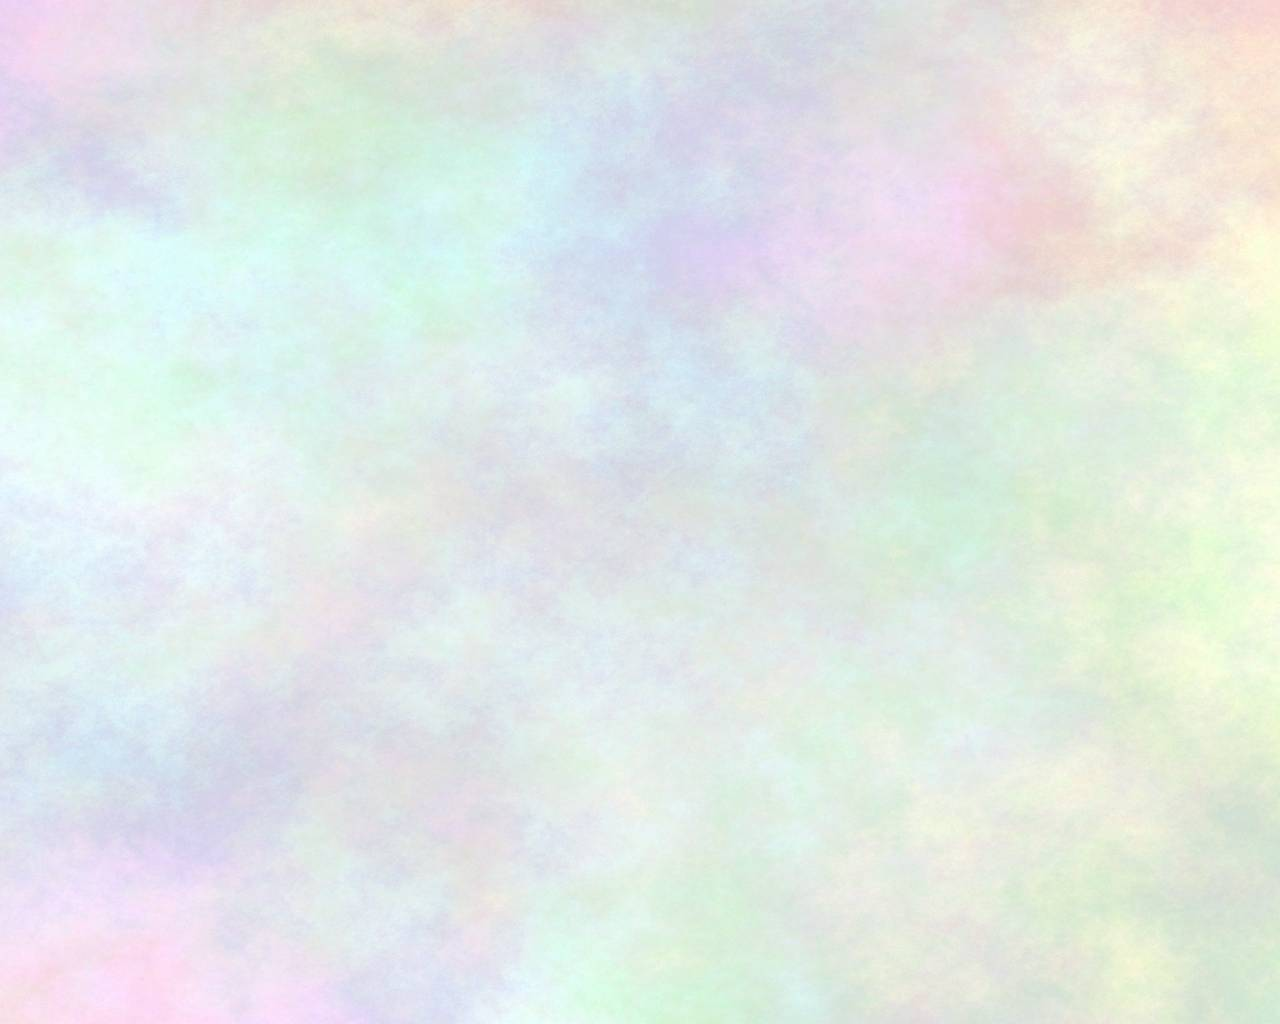 Pastel Colored Wallpaper